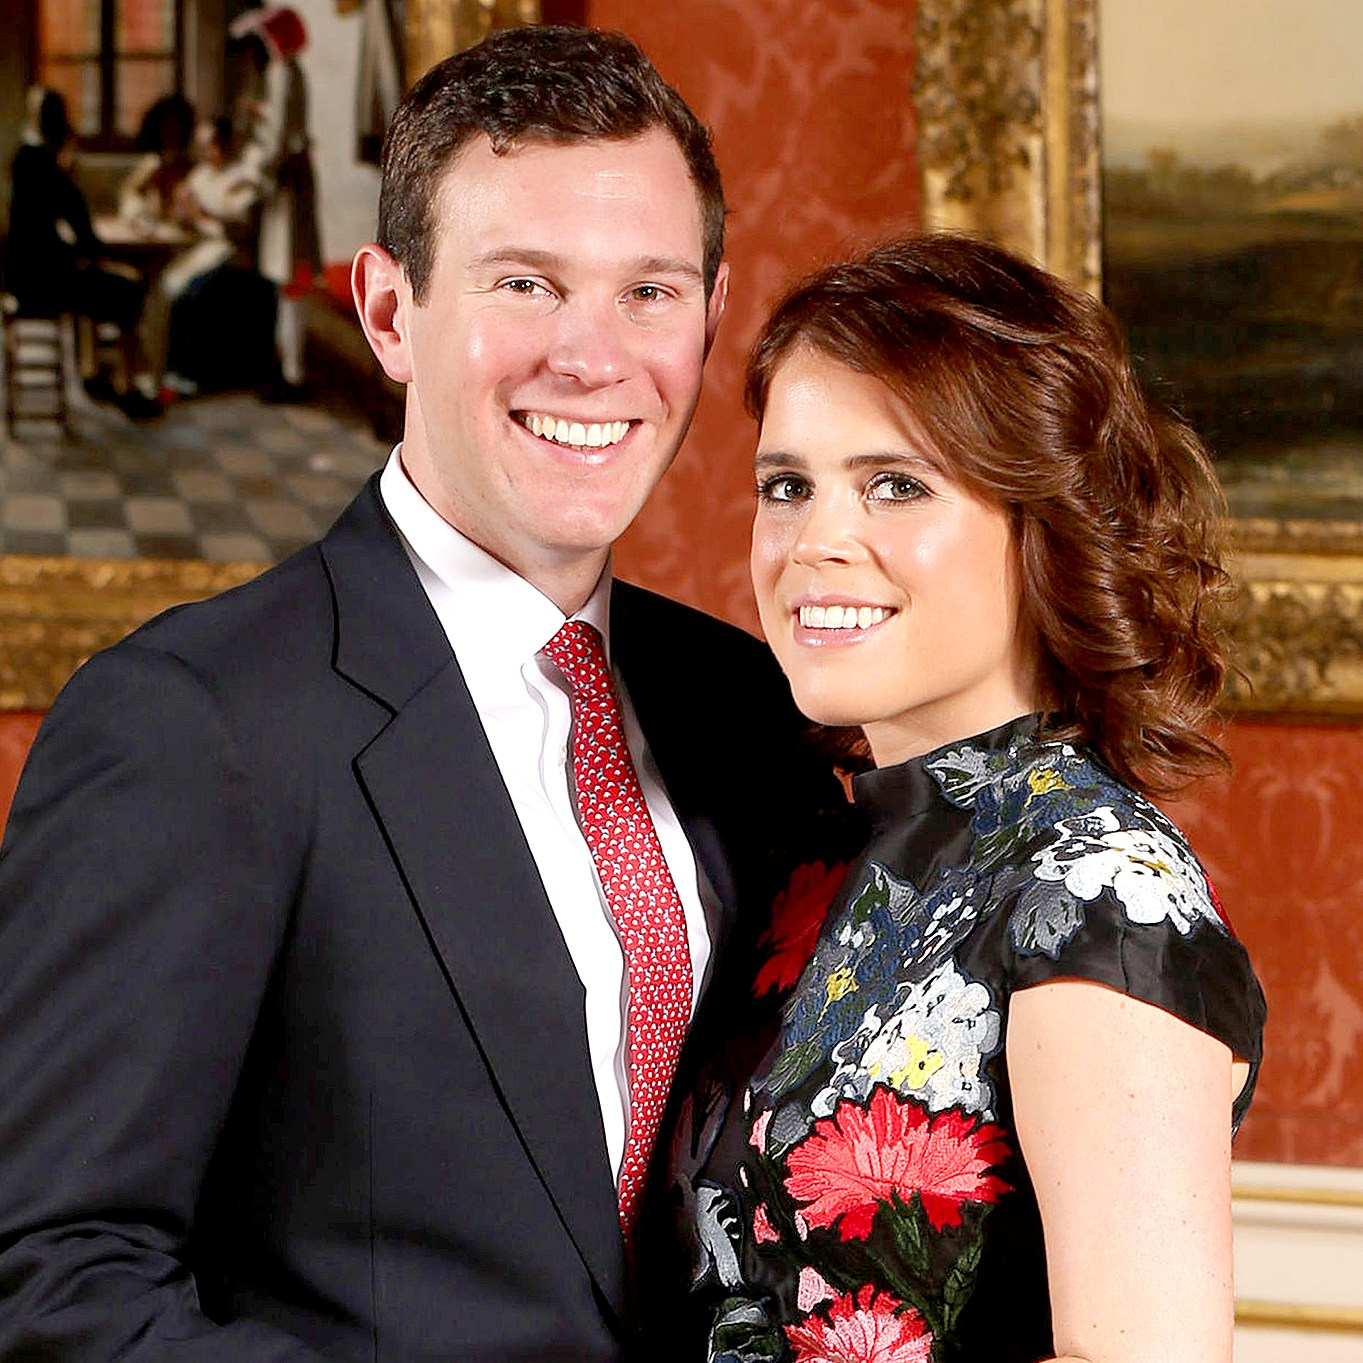 Princess-Eugenie-and-Jack-Brooksbank-engaged